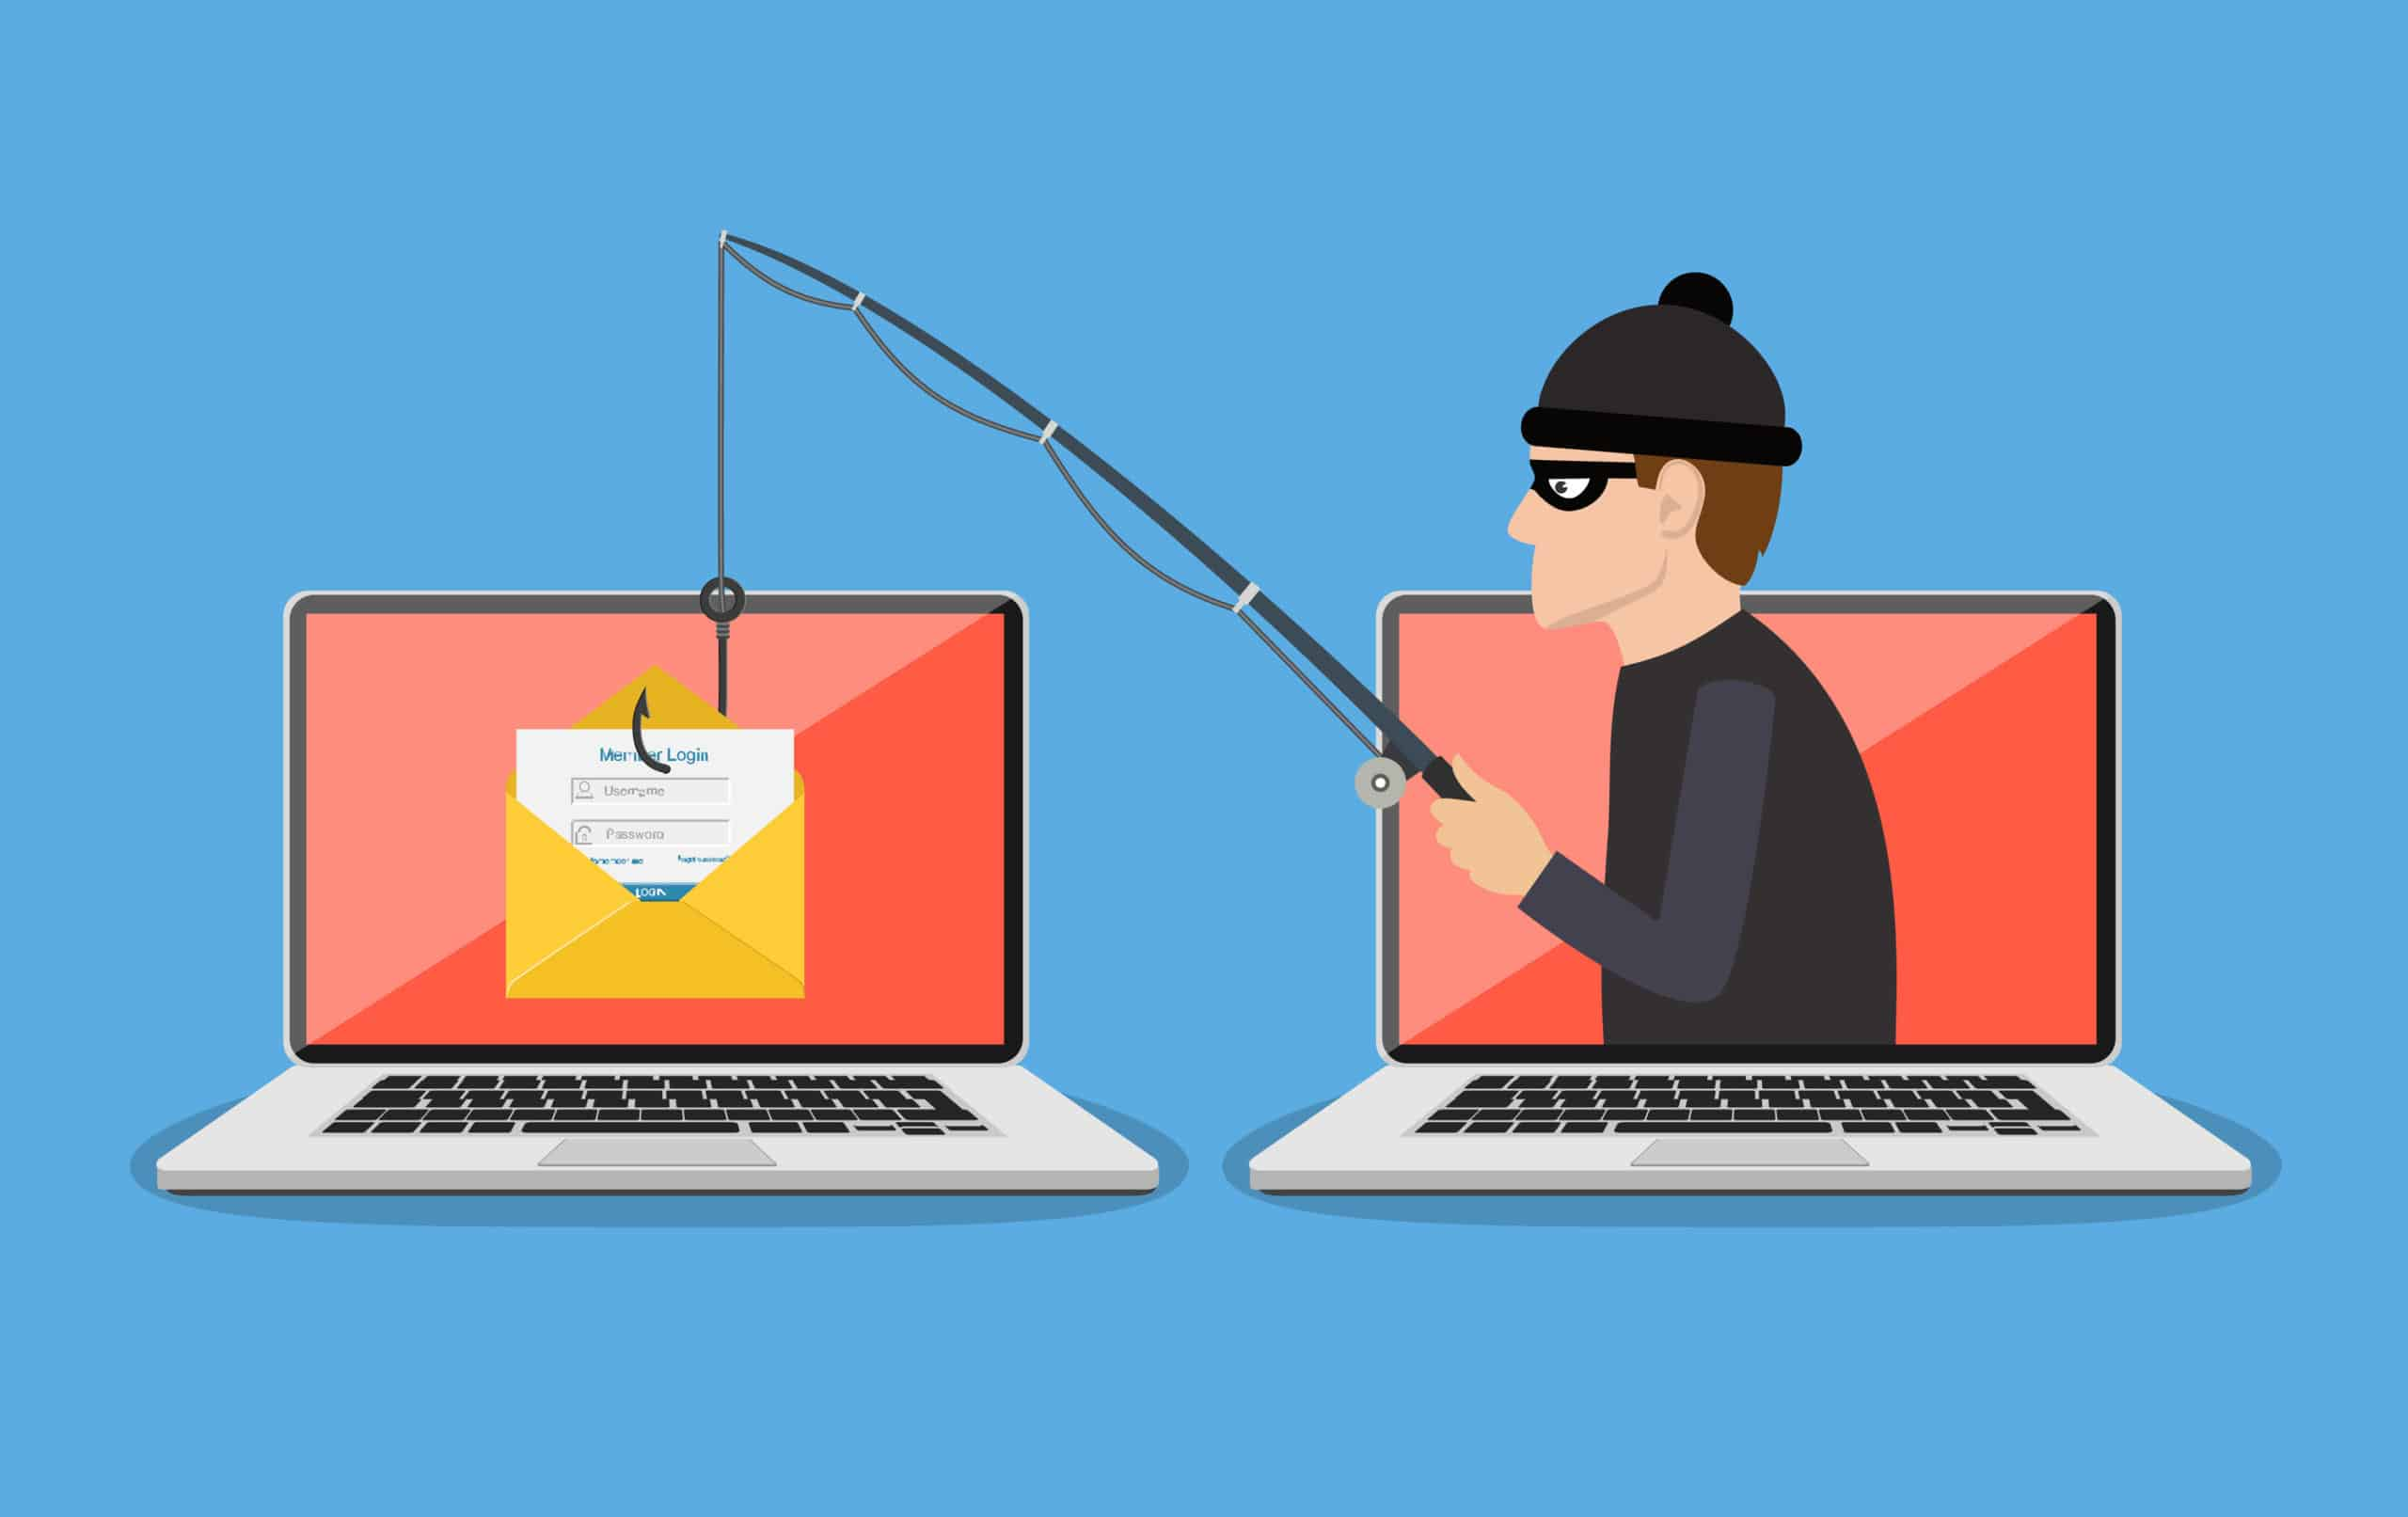 How Can I Avoid Falling Prey to Deceptive Phishing Emails?